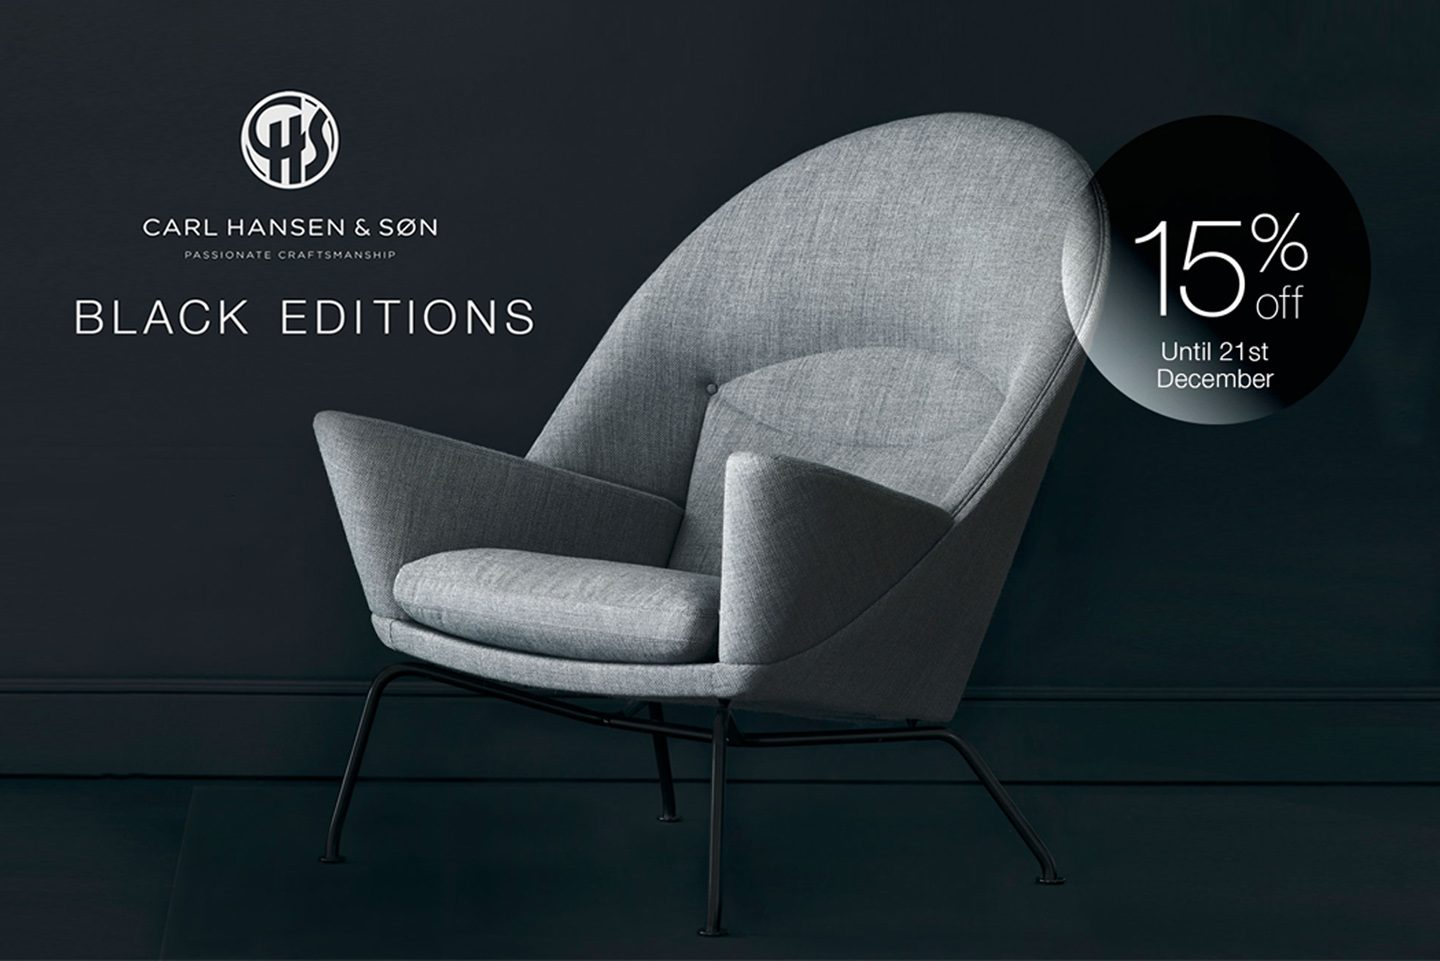 BLACK EDITIONS BY CARL HANSEN